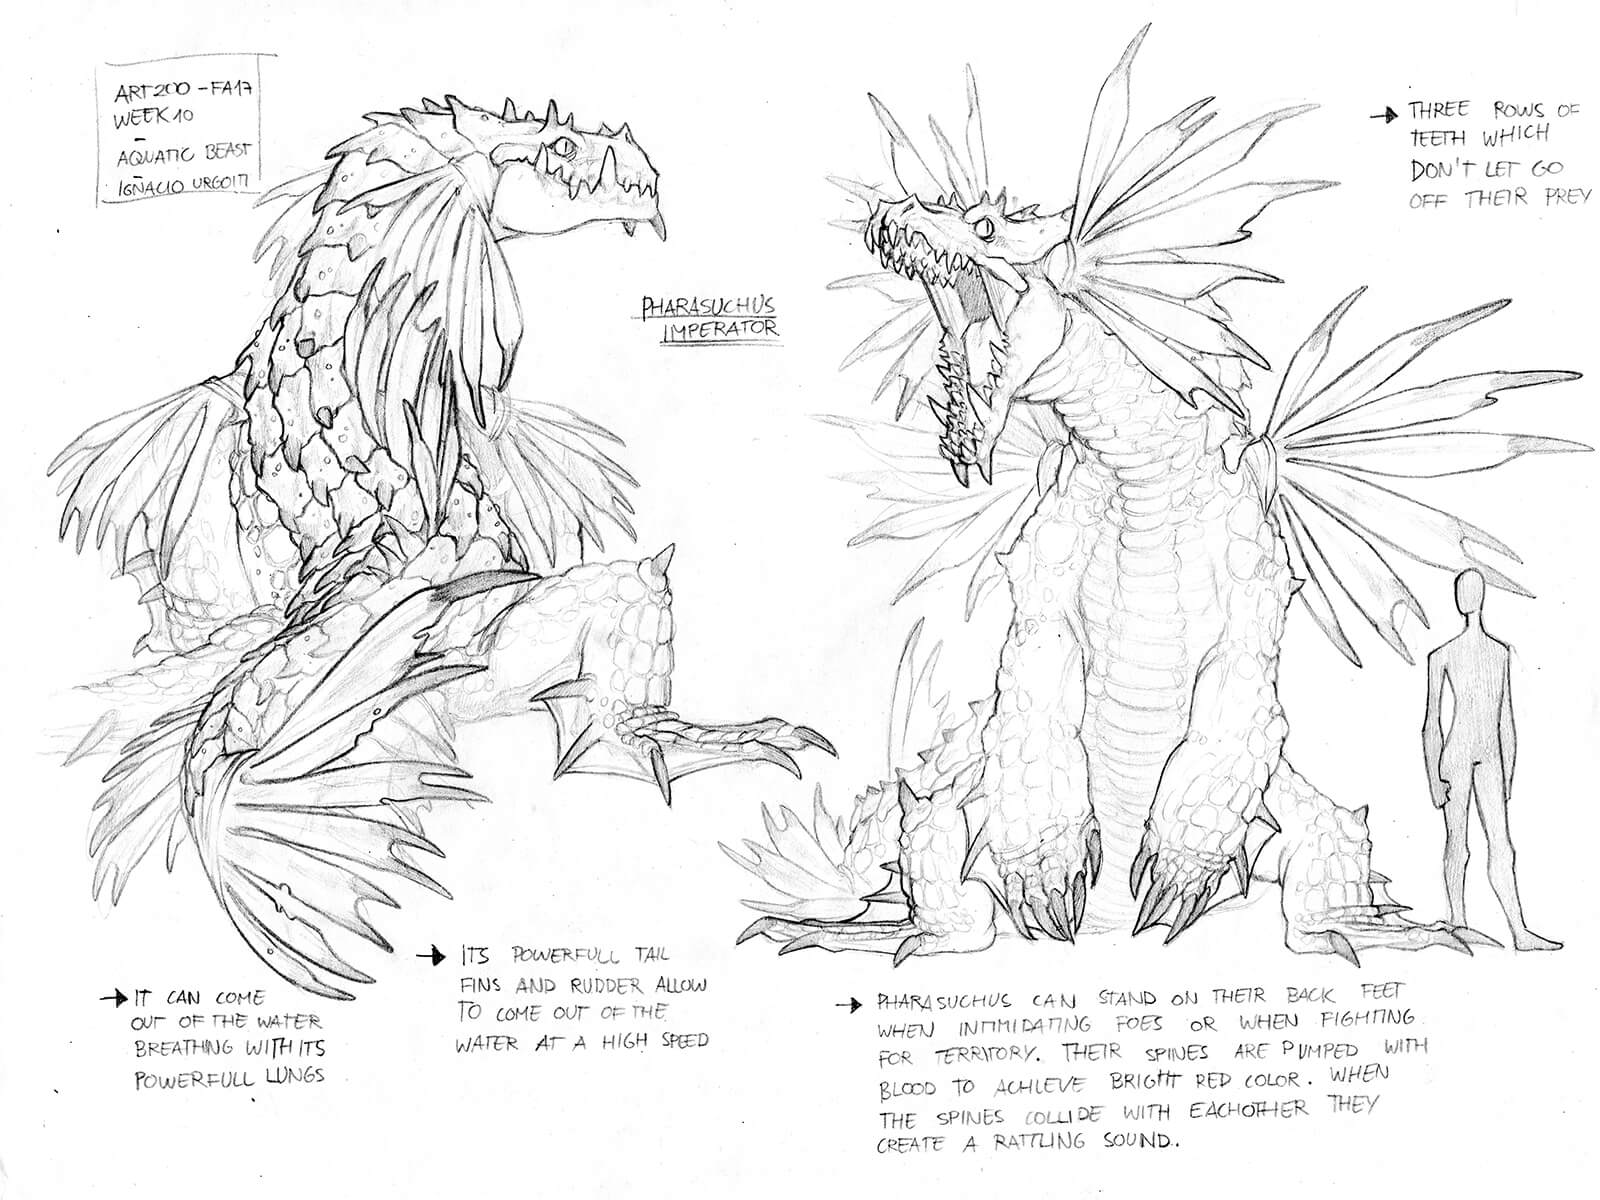 Black-and-white concept sketches of a frilled dragon-like creature in flight, standing, and eating an animal.